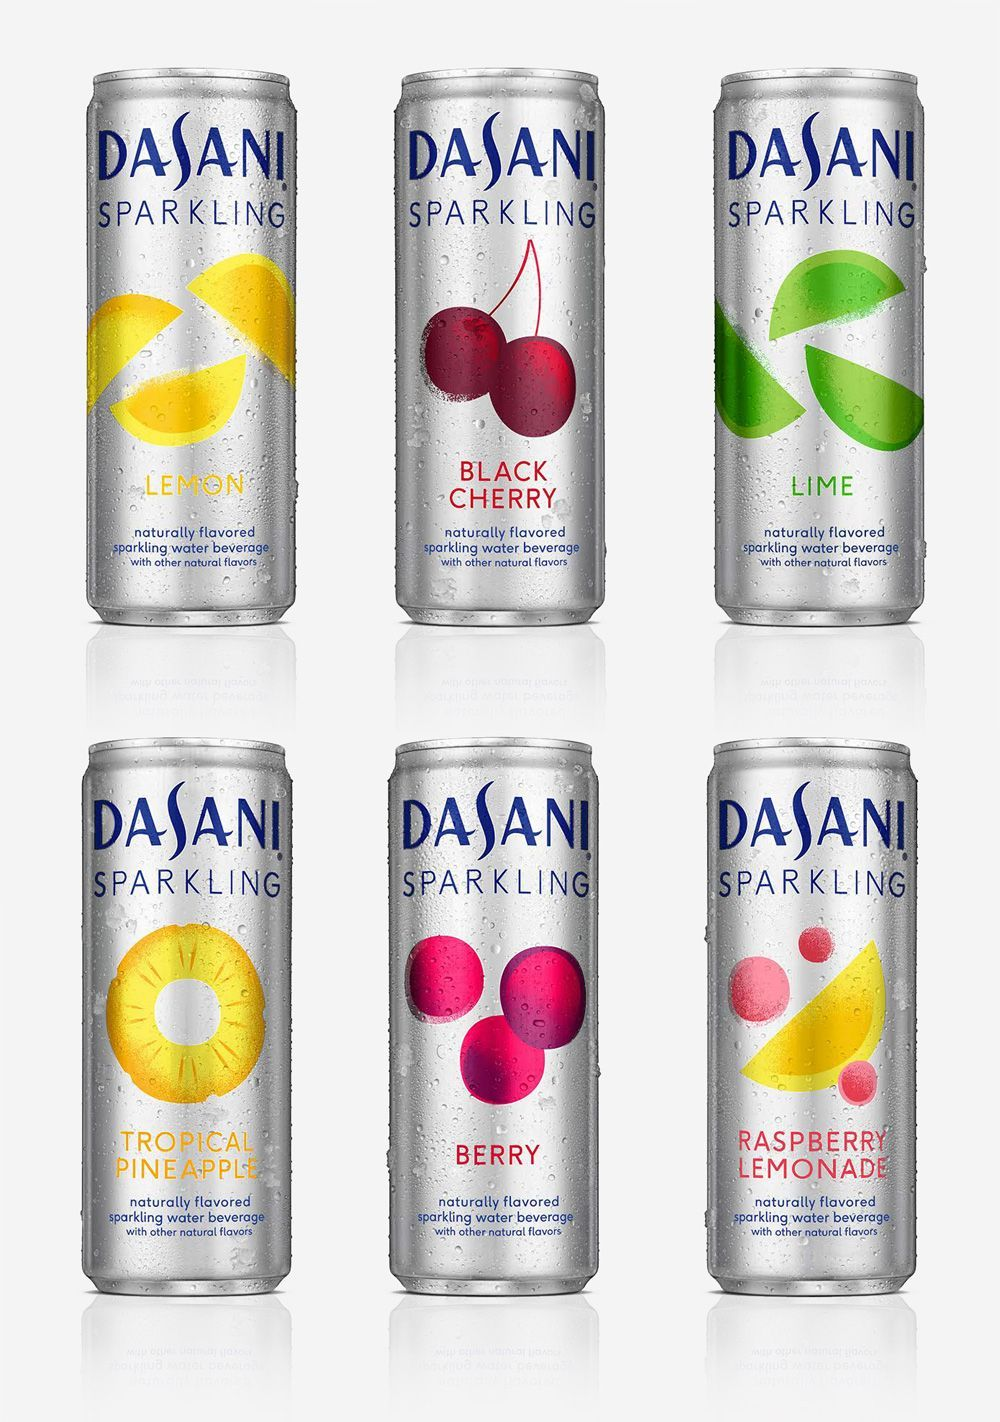 Dasani Logo - New Logo and Packaging for Dasani Sparkling by Moniker | Brand New ...